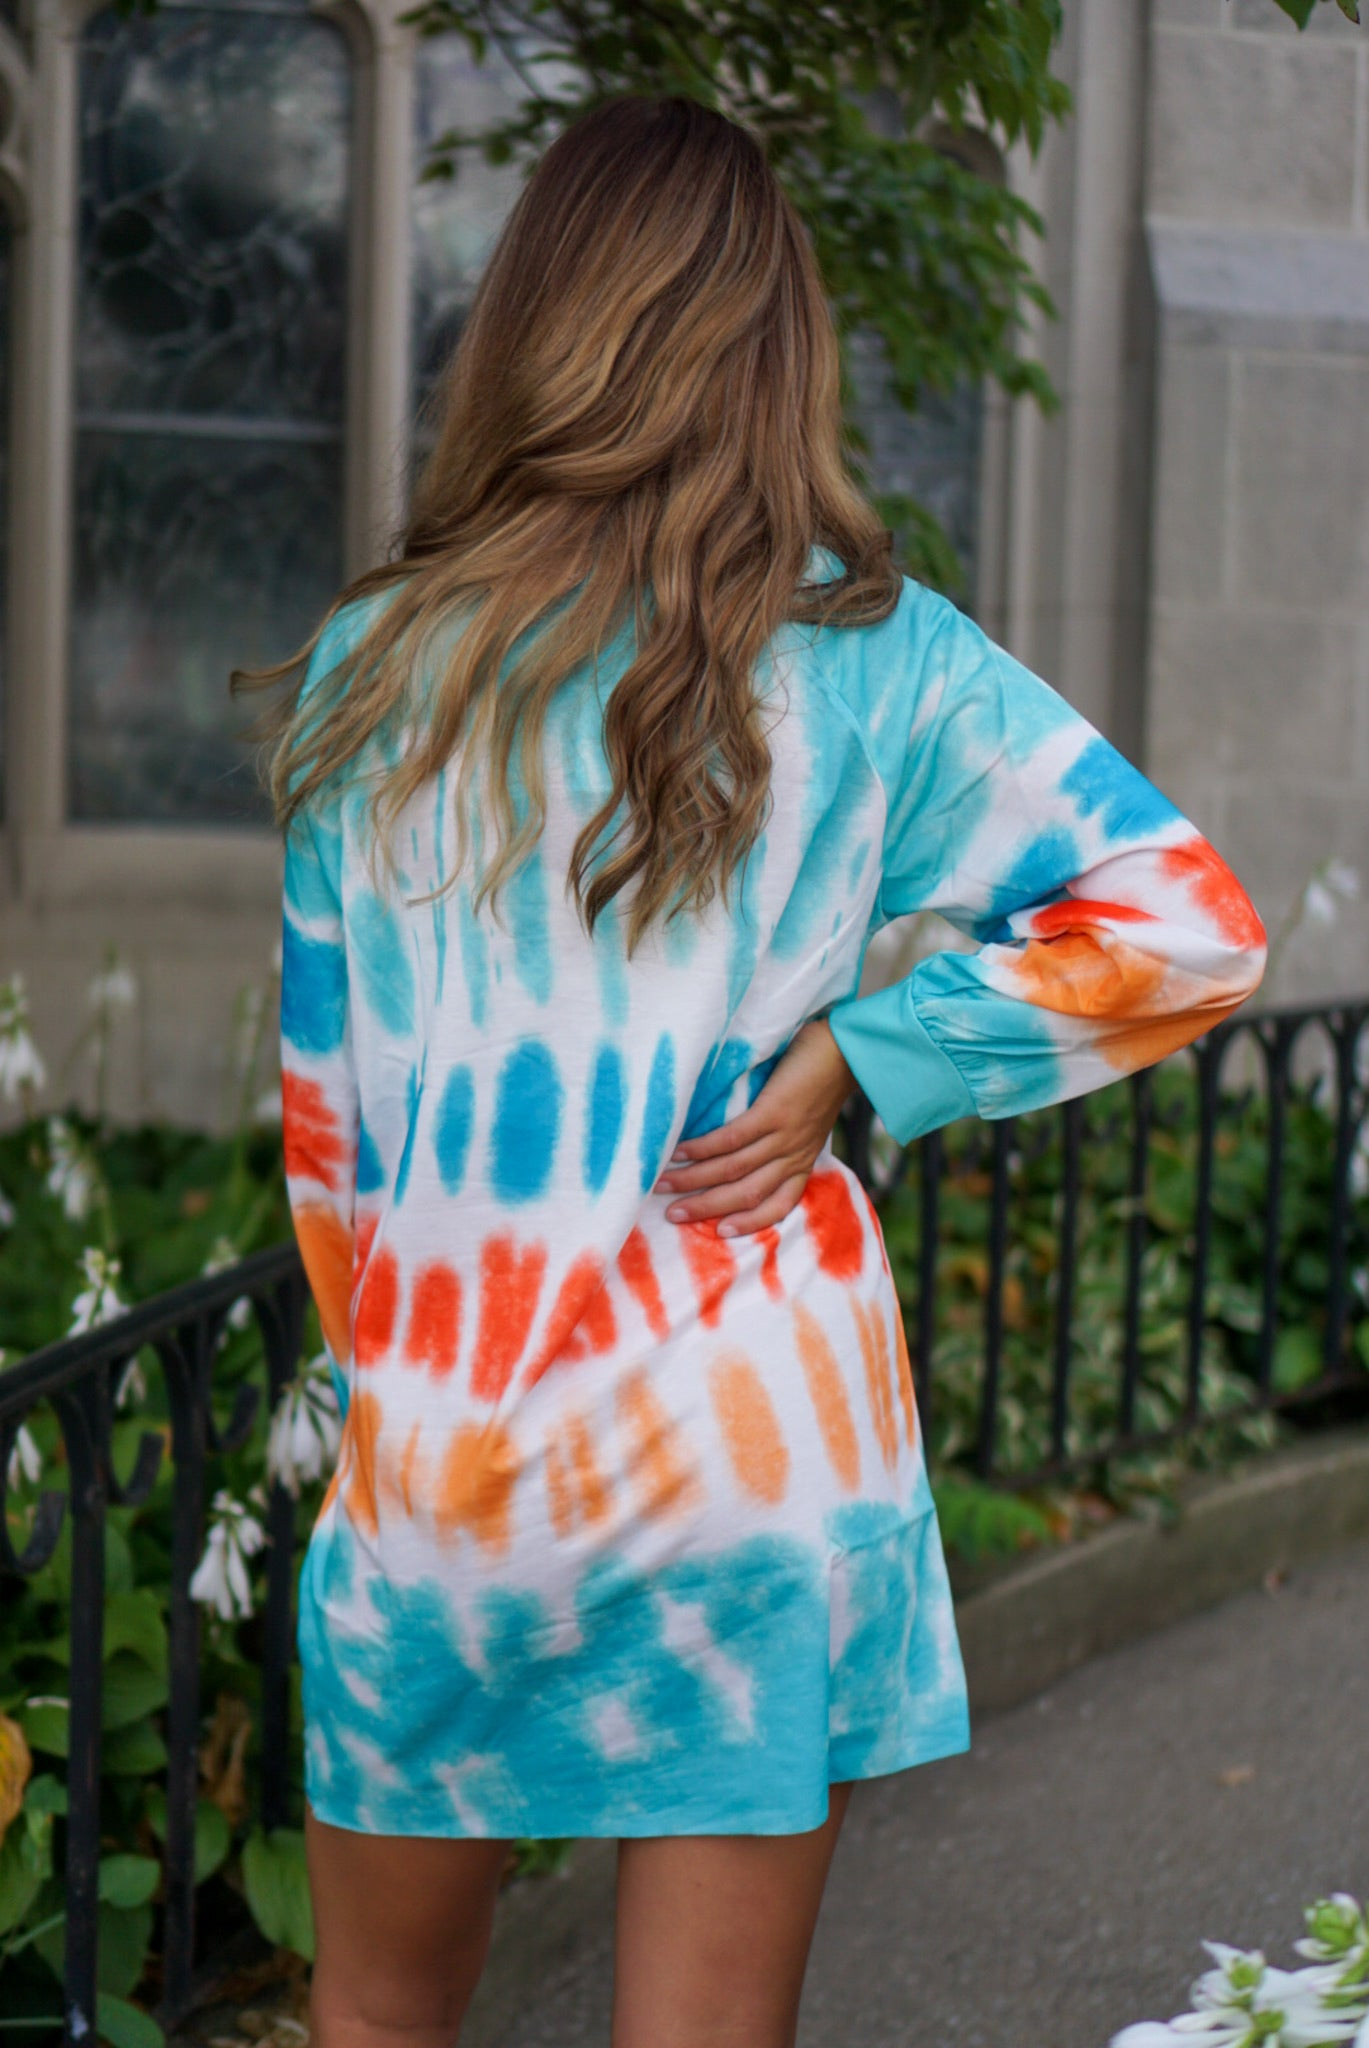 Chillax Blue Tie Dye Tunic